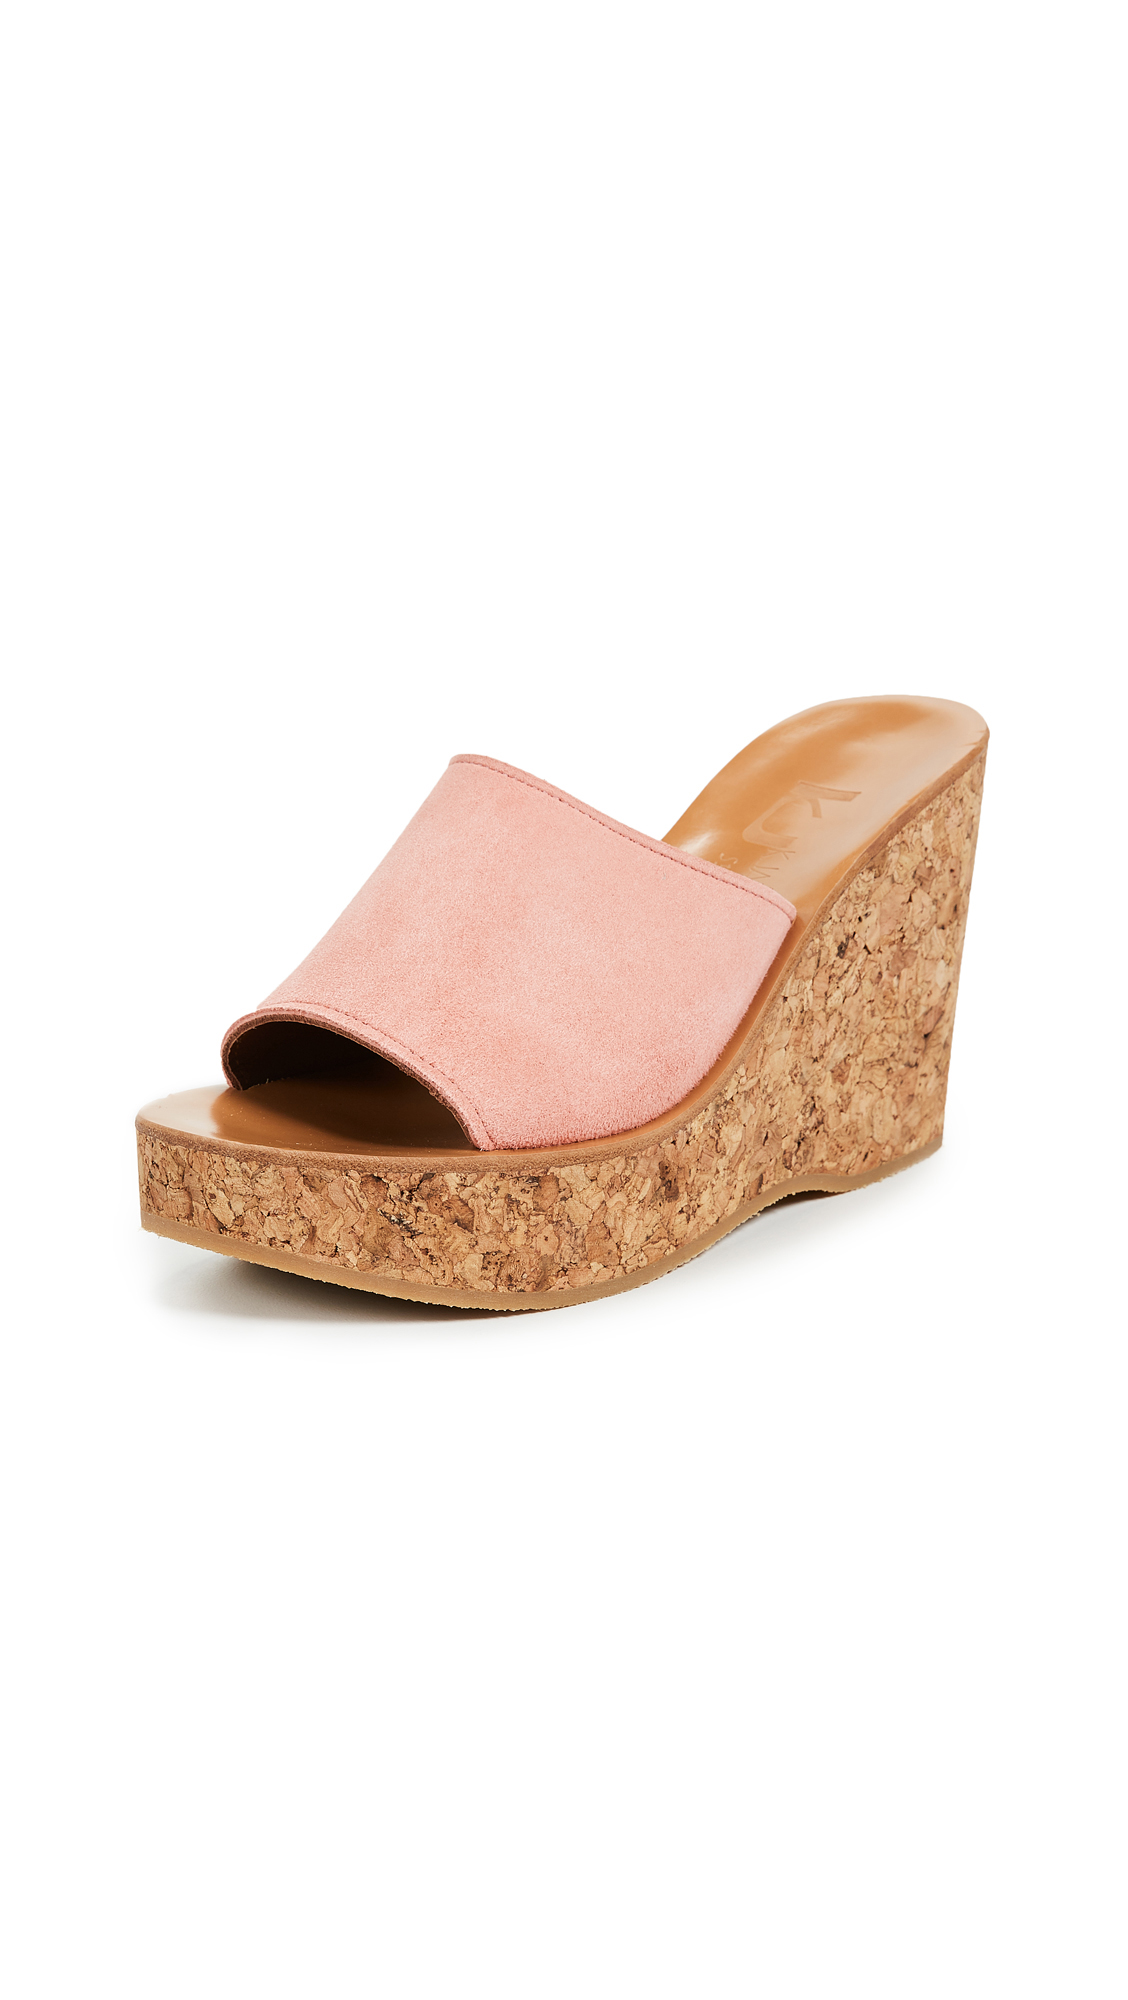 K. Jacques Timor Wedge Sandals - Velours Camelia